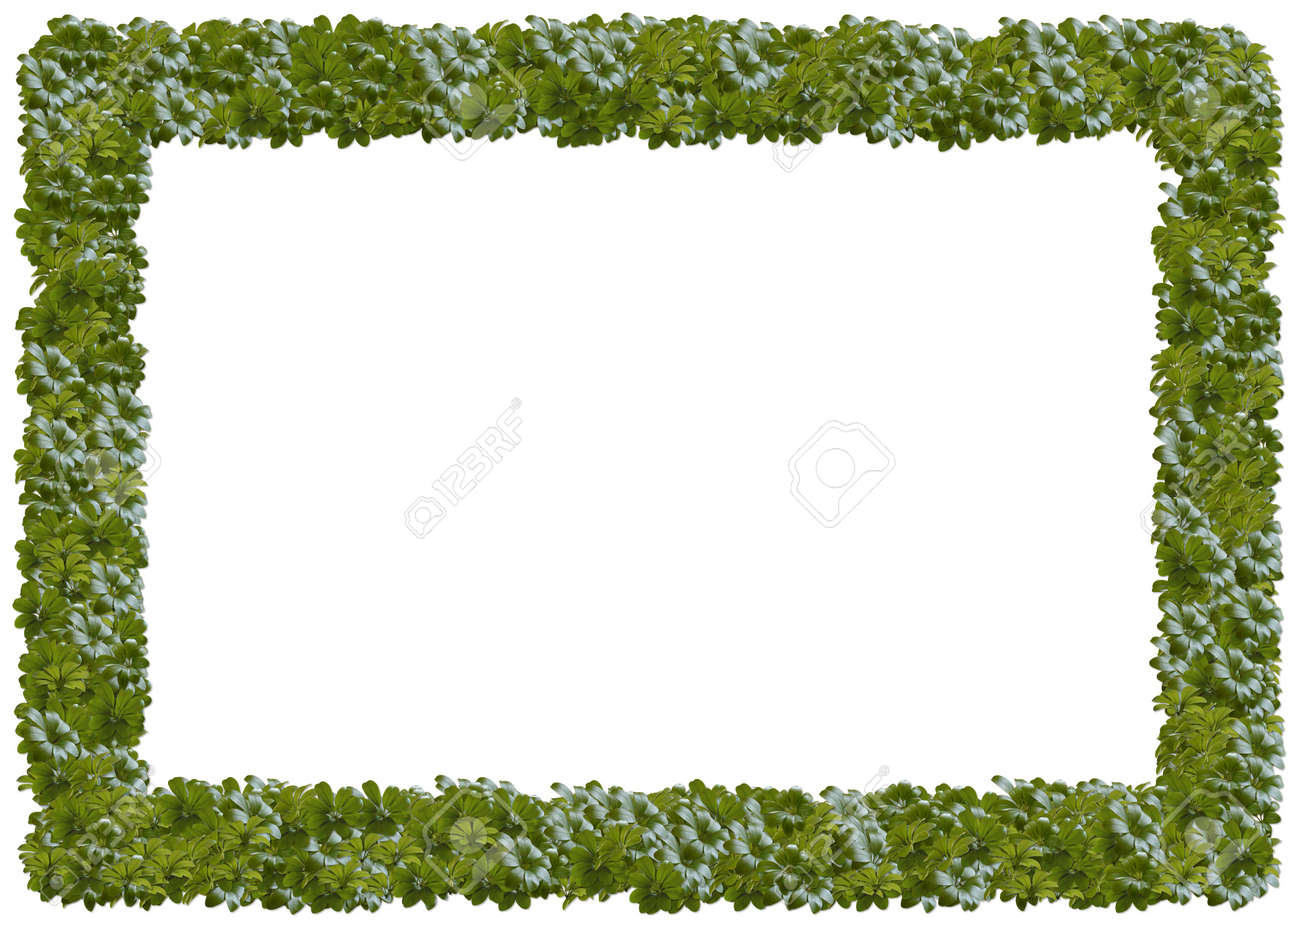 Umbrella Plants Frame. From The Floral Frames Series Stock Photo ...